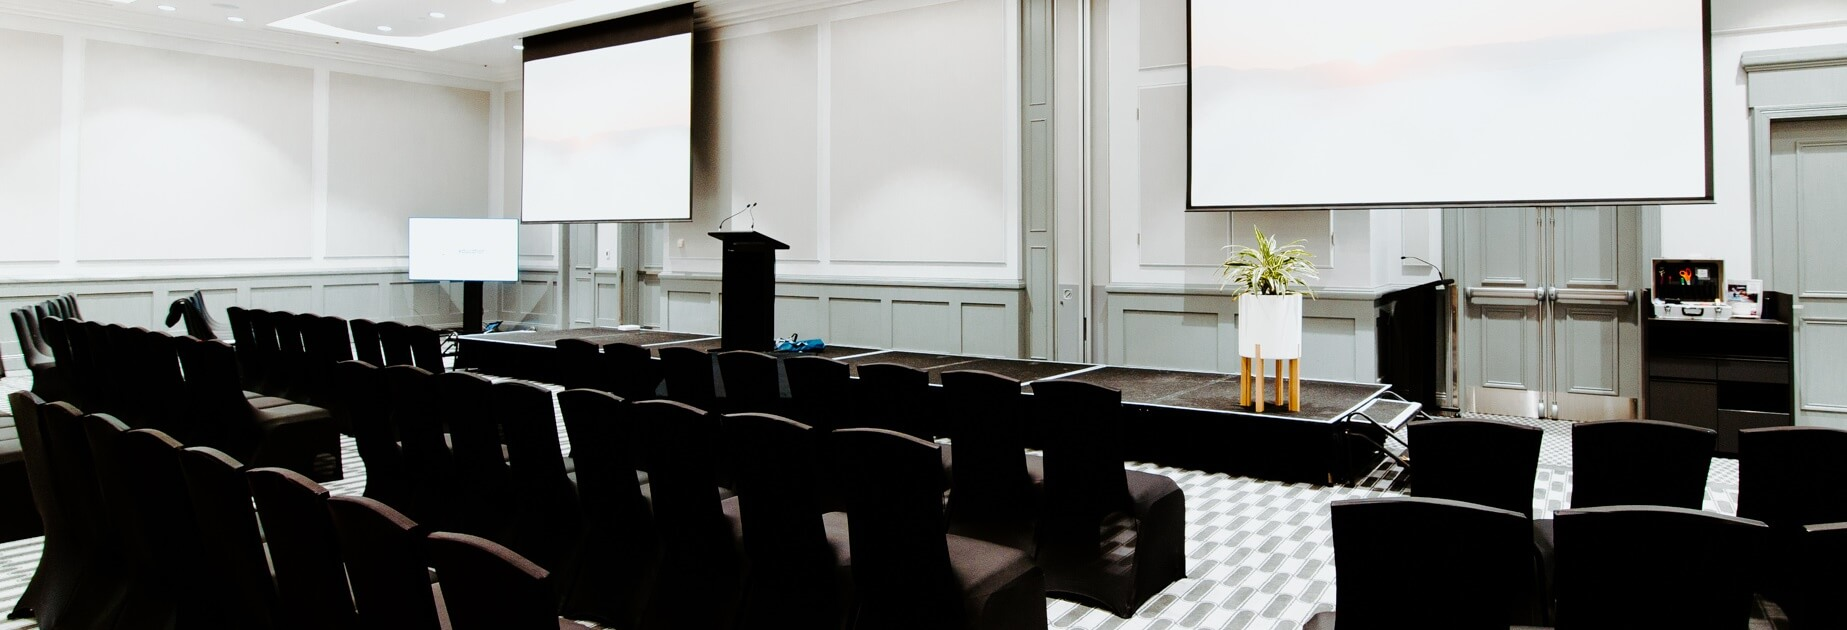 black and white meeting room